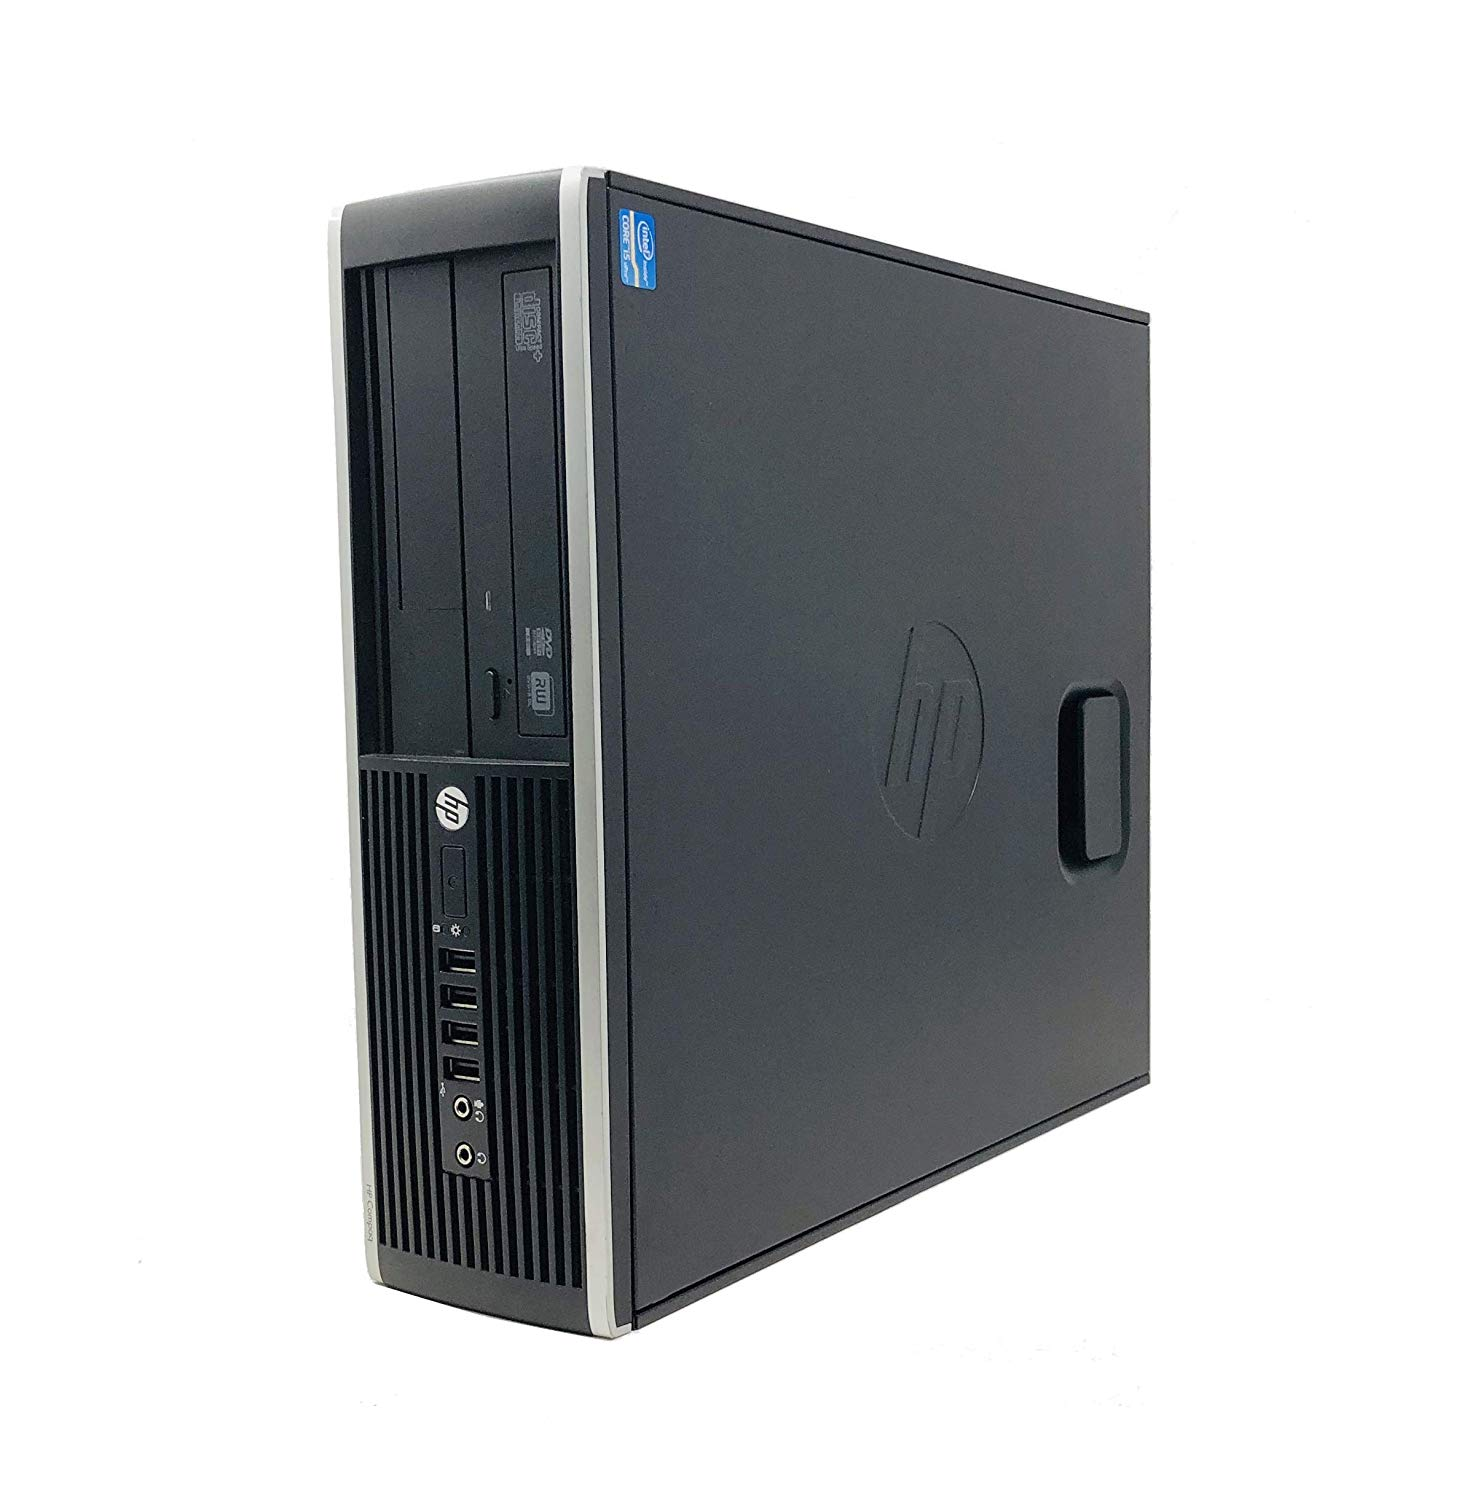 Hp Elite 8200 - Ordenador de sobremesa (<font><b>Intel</b></font> <font><b>i5</b></font>-<font><b>2400</b></font>, 8GB de RAM, Disco SSD de 480GB , Windows 10 PRO ) - (Reacondicionado) image